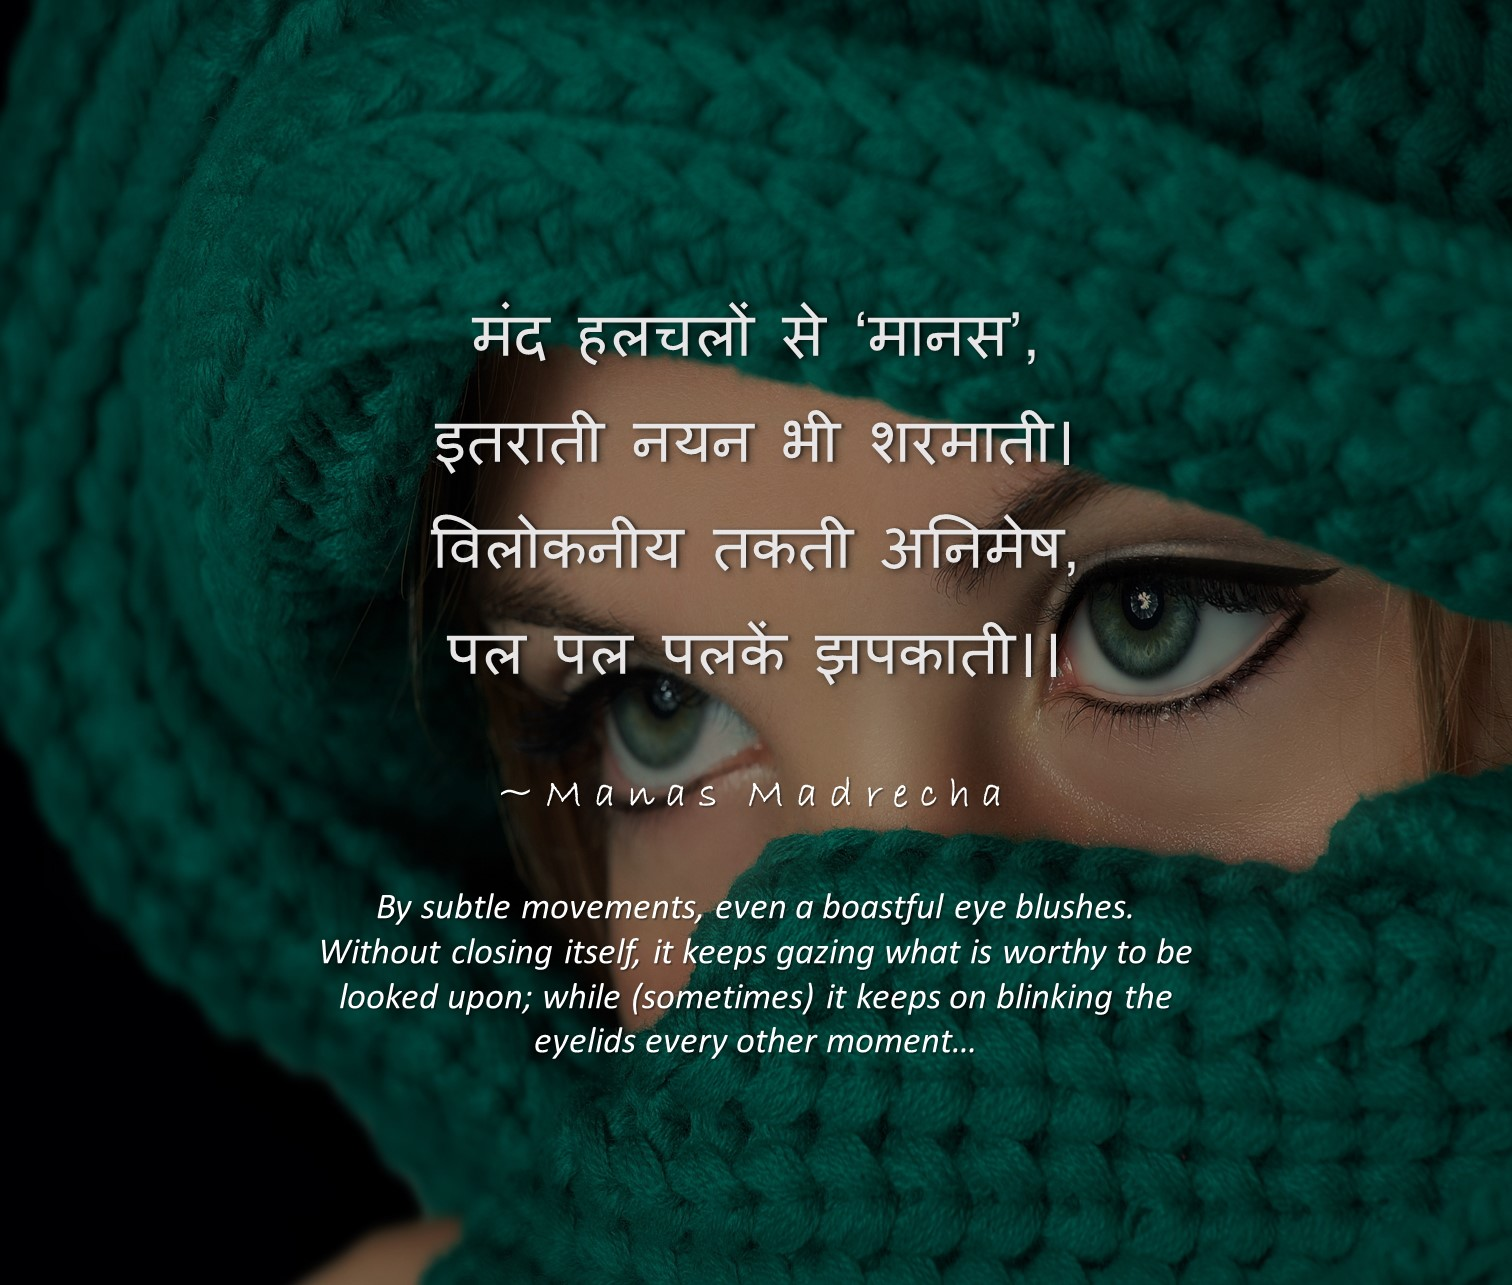 Eyes Don't Lie - Hindi Poem